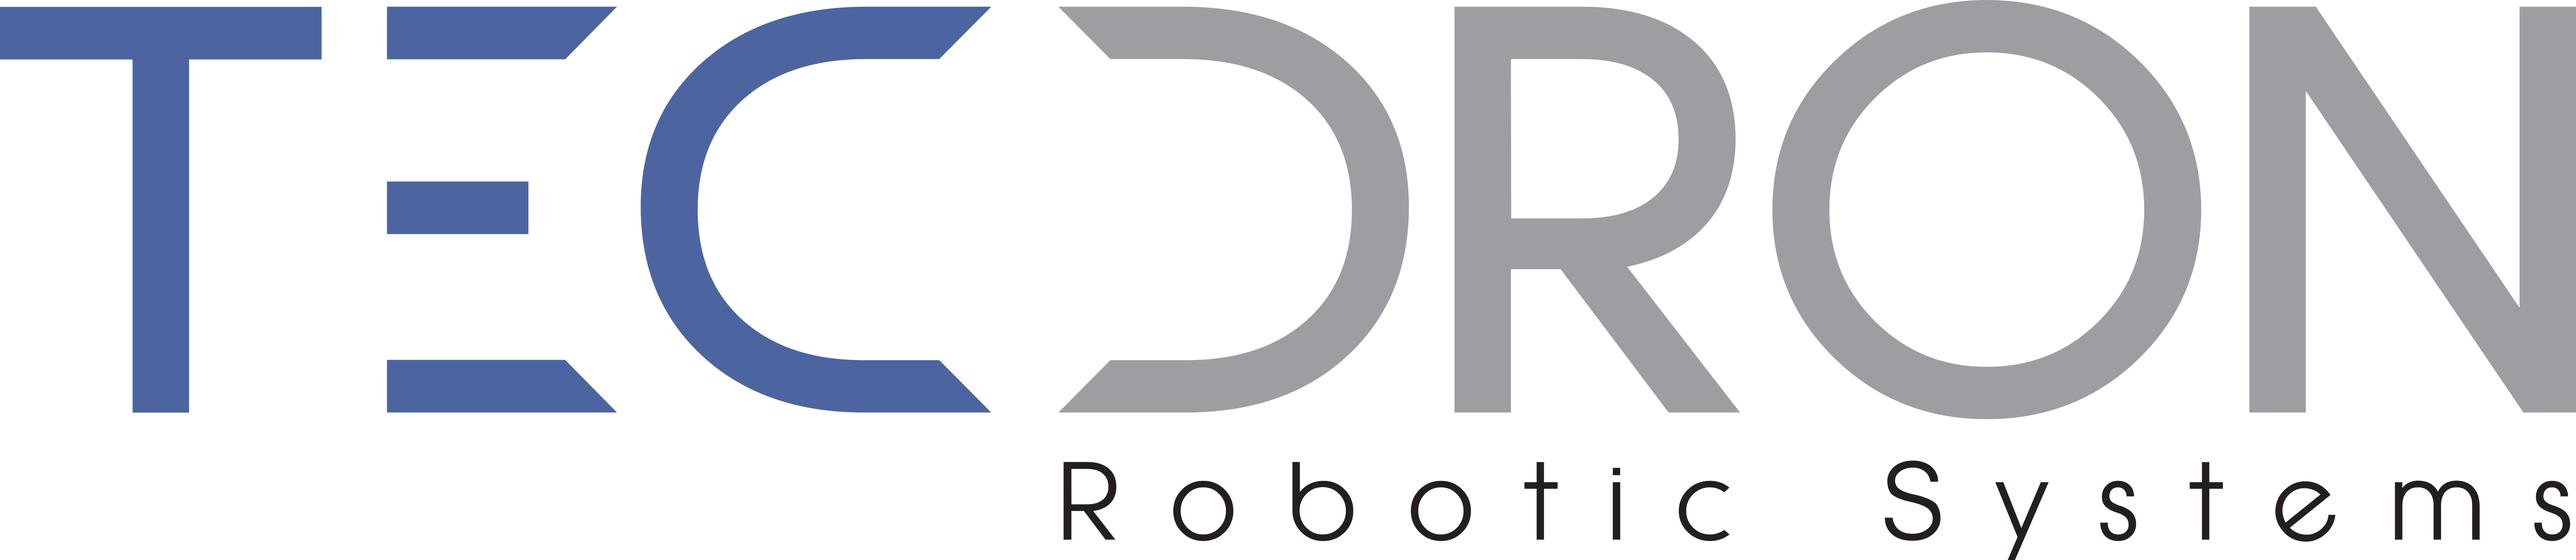 Roboteq Solution Partners